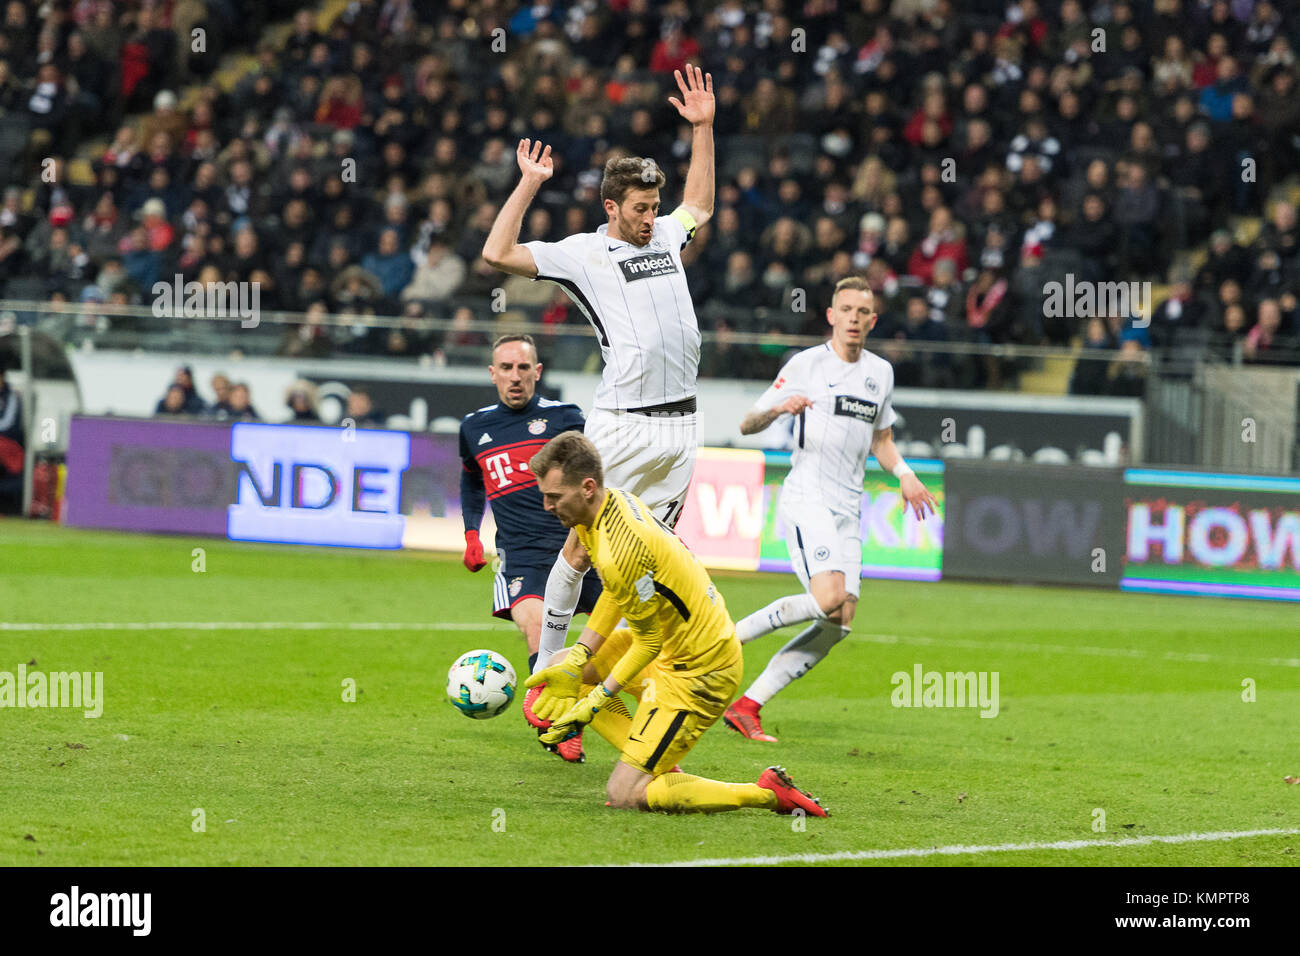 Frankfurt, Germany. 9th December, 2017. David Abraham (Eintracht Frankfurt #19), Lukas Hradecky, Torwart (Eintracht - Stock Image